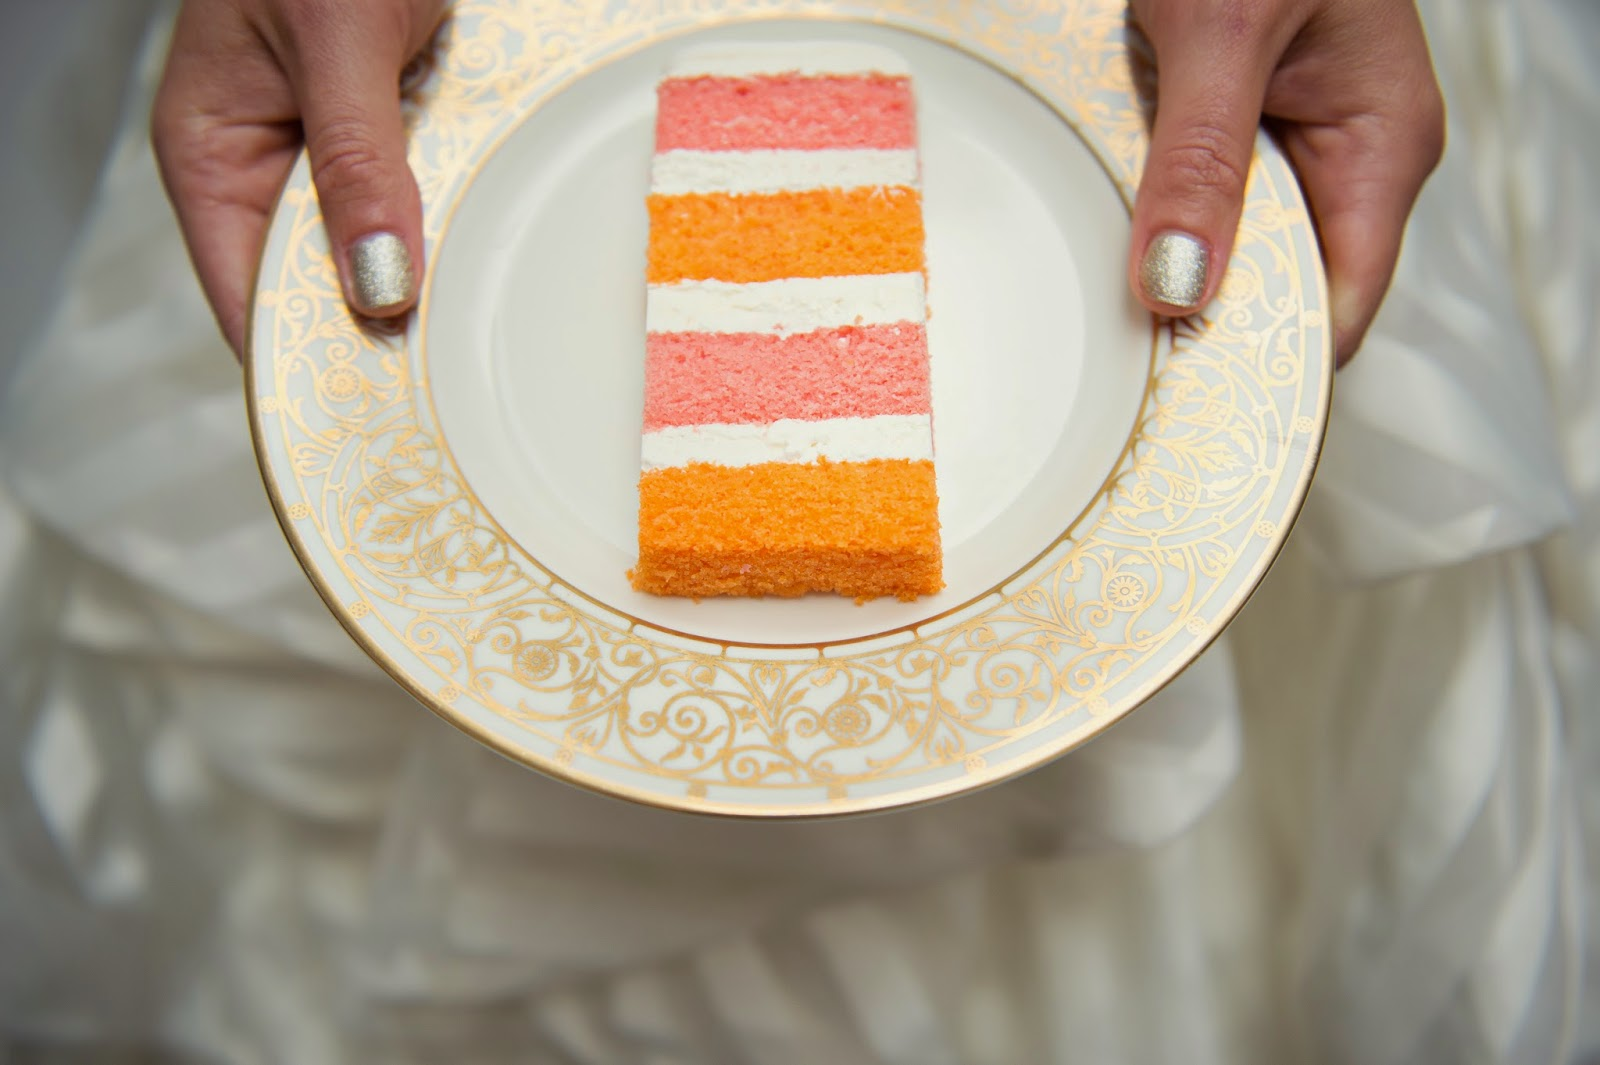 ct pink & orange wedding cake